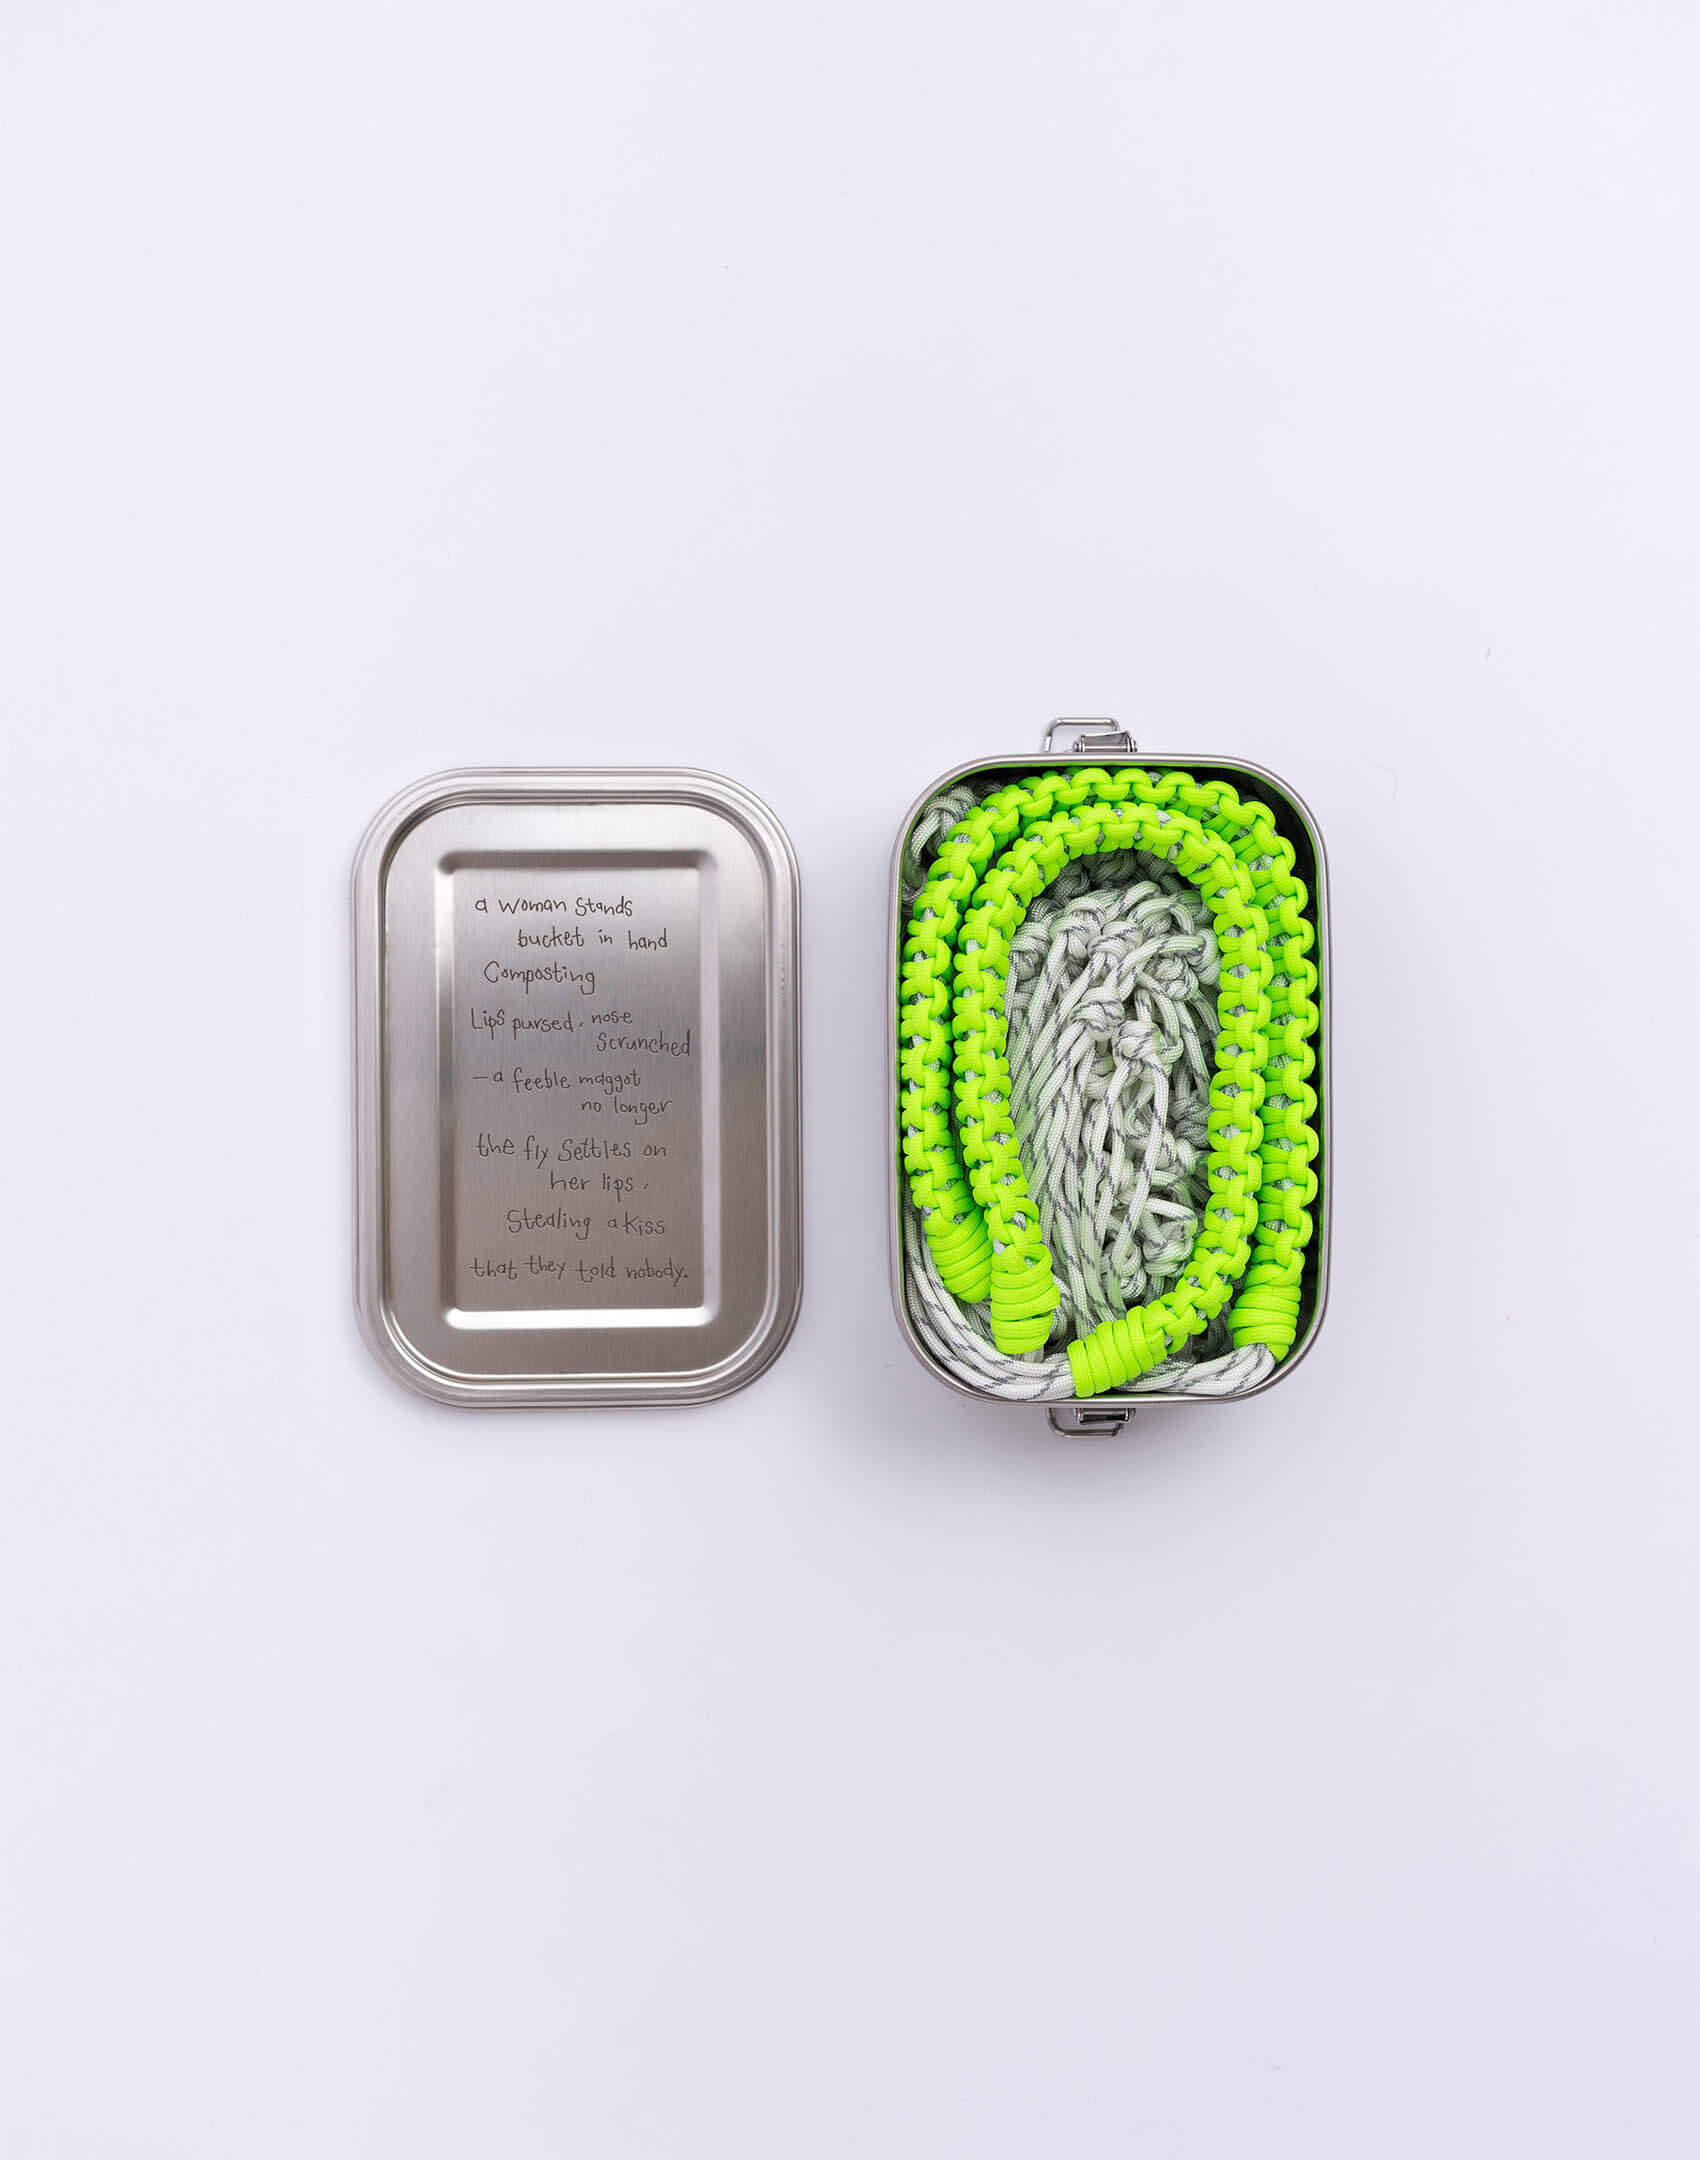 P.S. Field Bag 15 (Dad Shoe), white reflective/neon green colorway. Stainless steel lunchbox featuring tender love poem between a woman and fly.